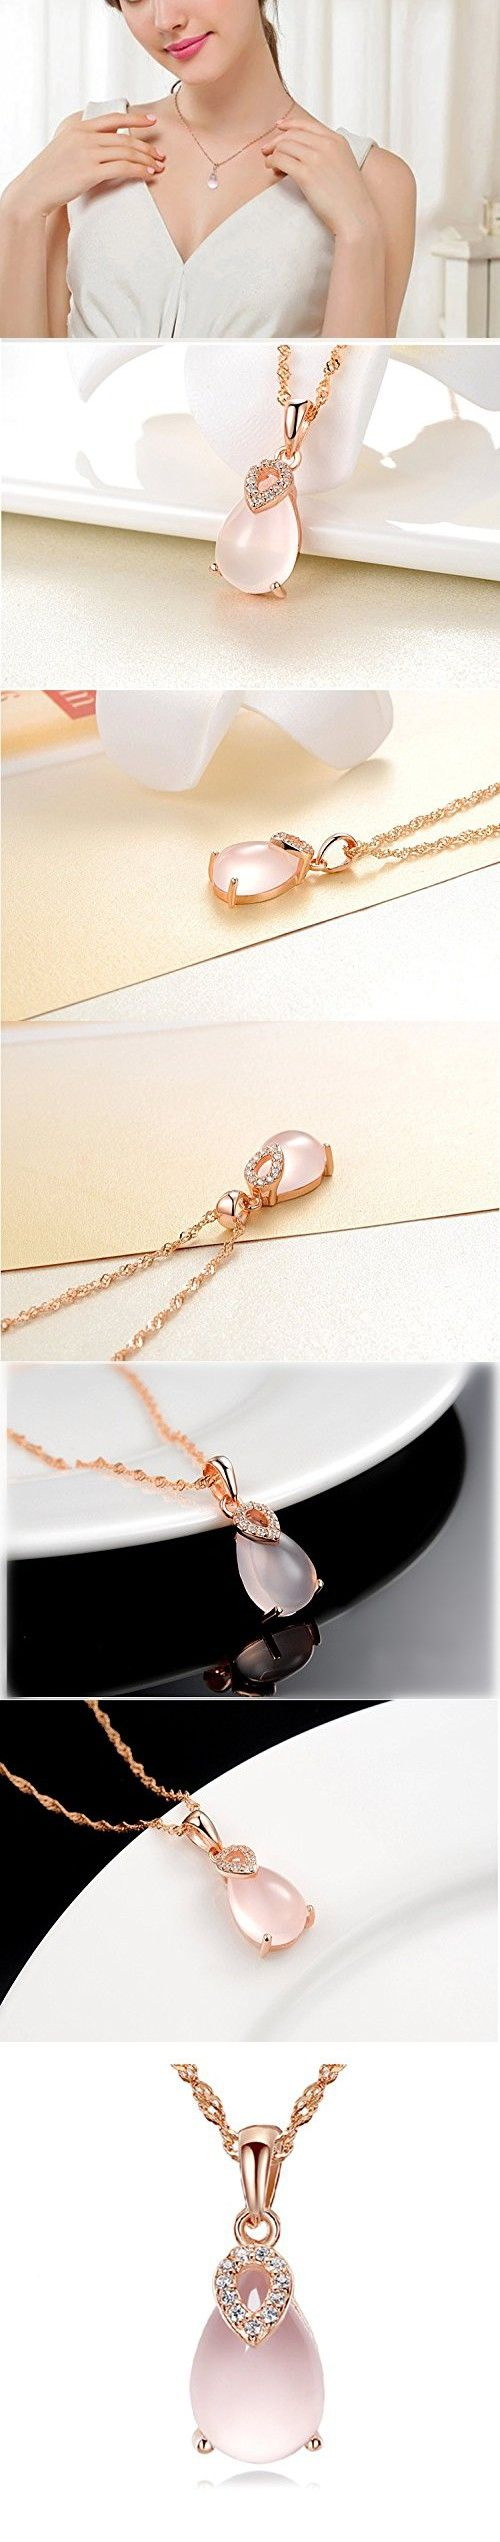 Tabwing Lucky Stone Women Necklace Pendant ,Love Gem Bridal Wedding Jewelry,bridesmaid Gift (Pink)